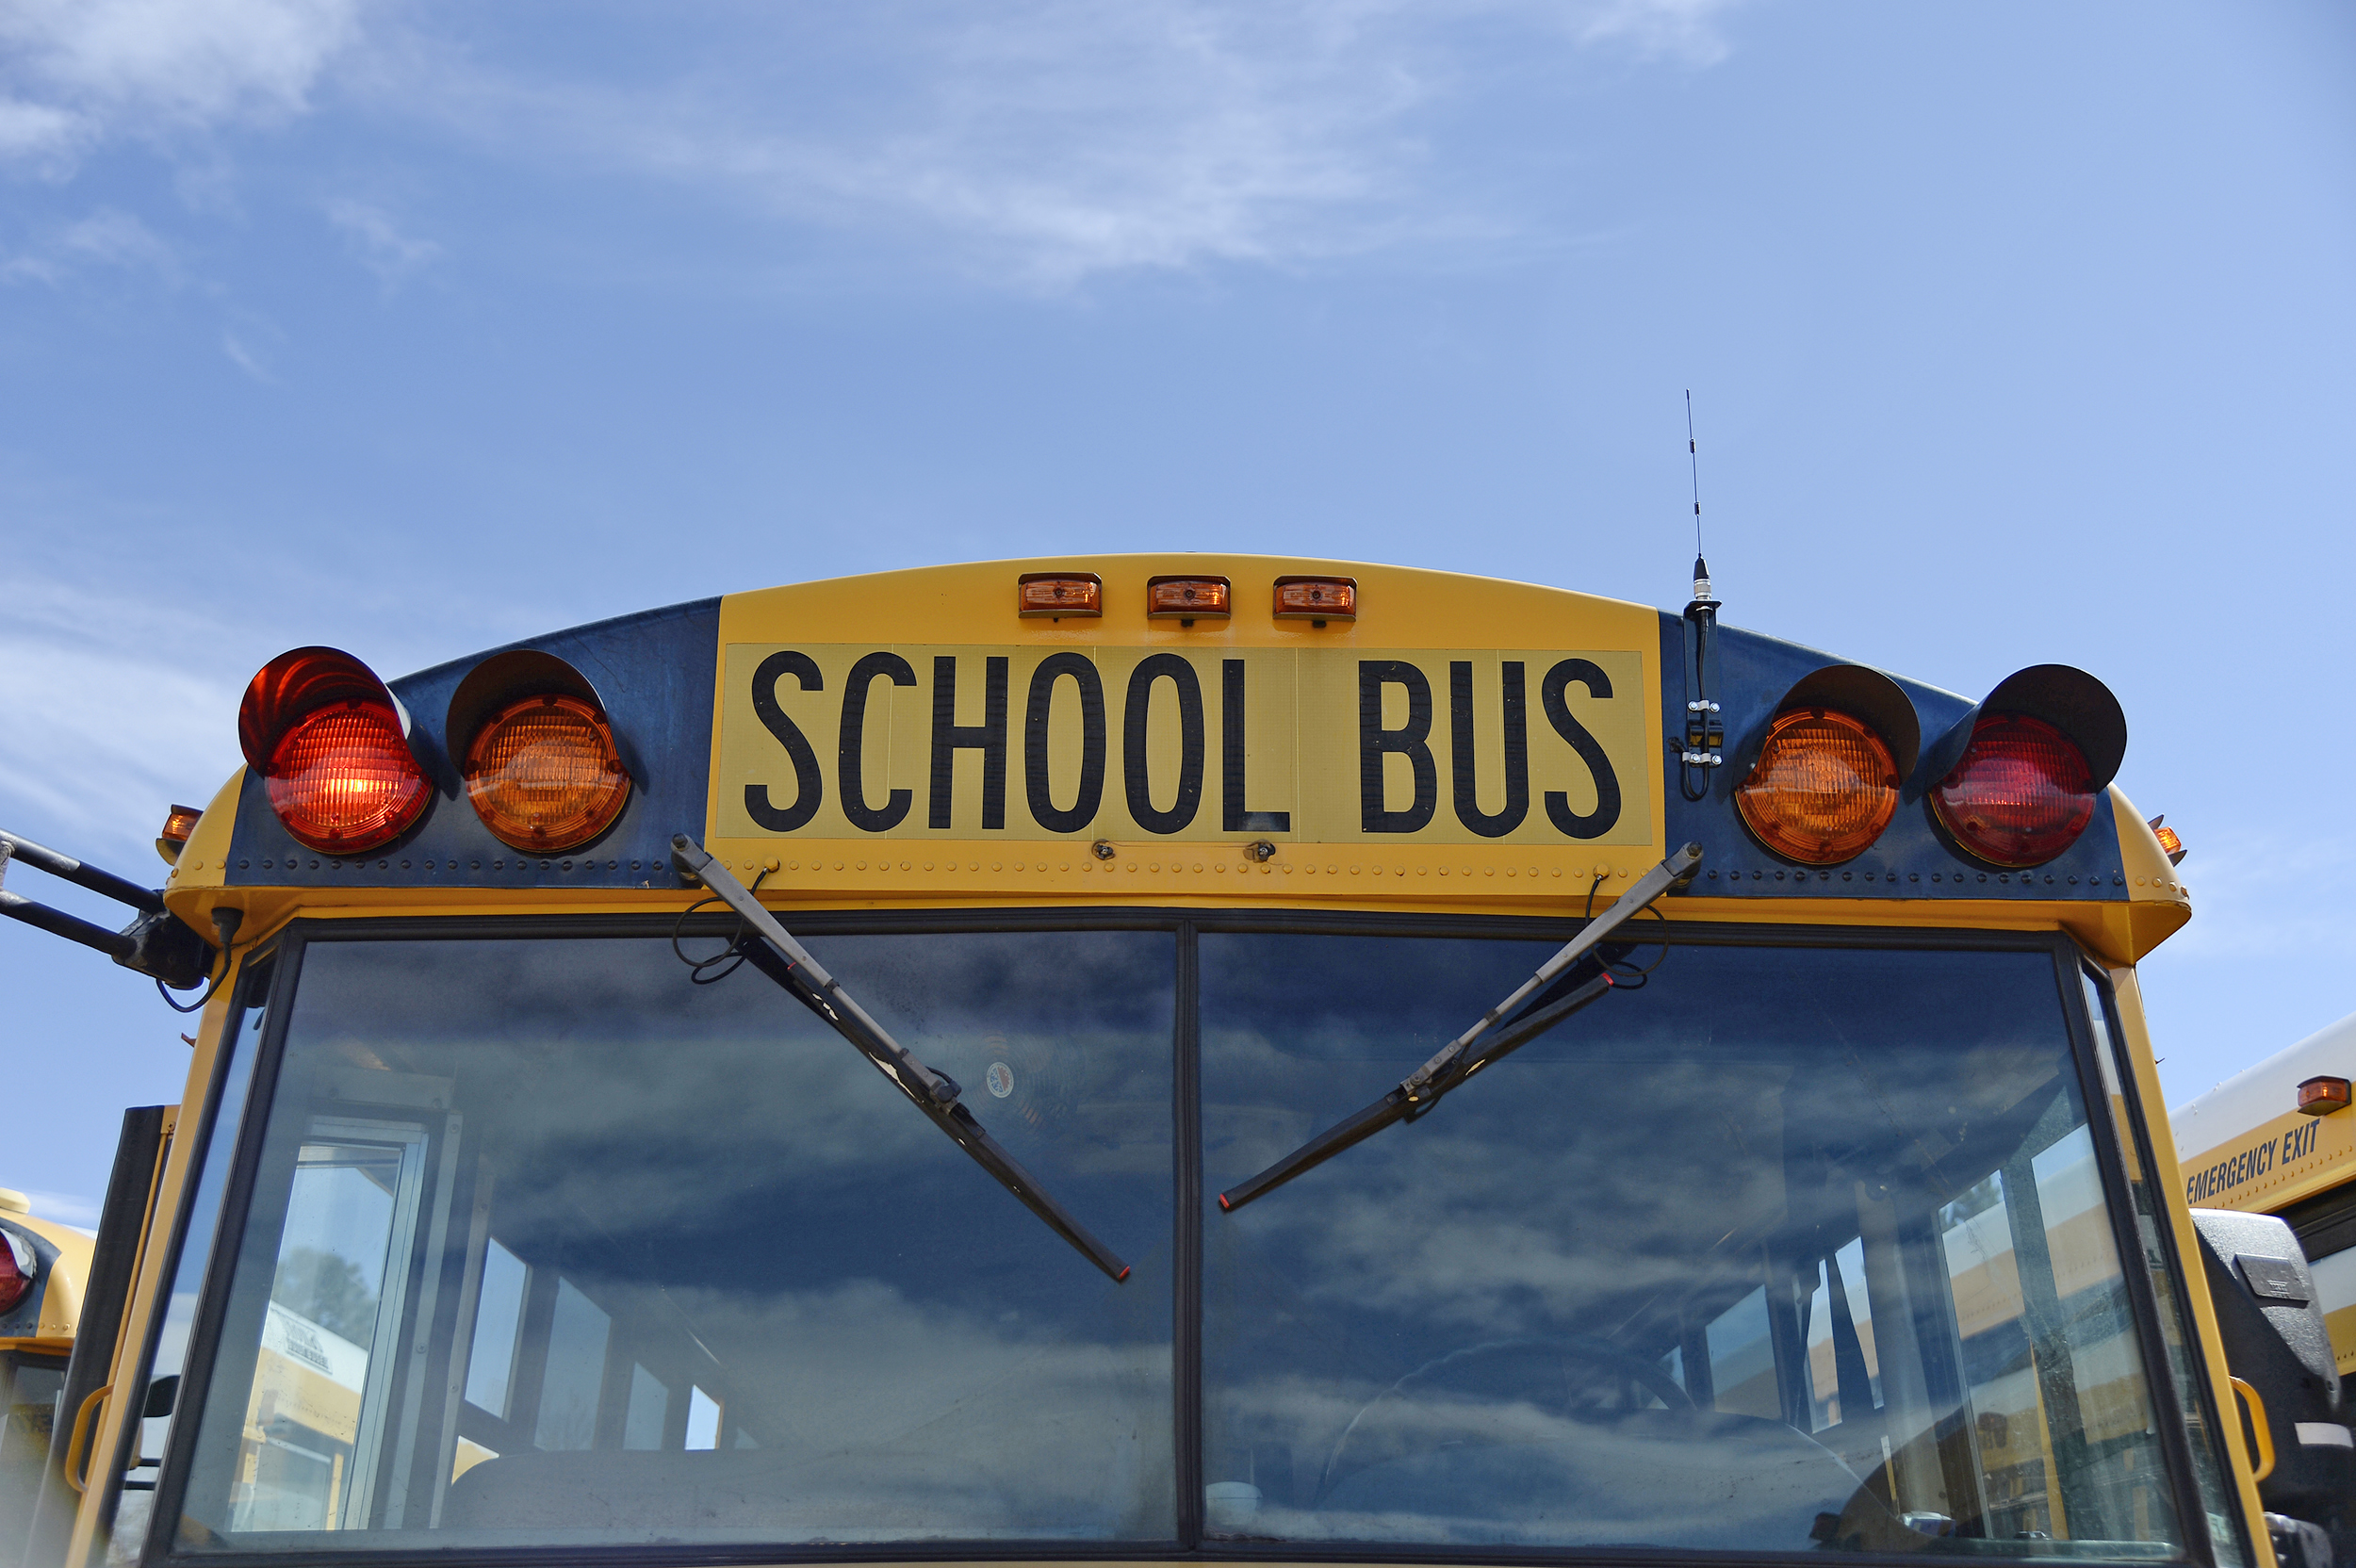 Alabama mom accused of boarding school bus, fighting 11-year-old student